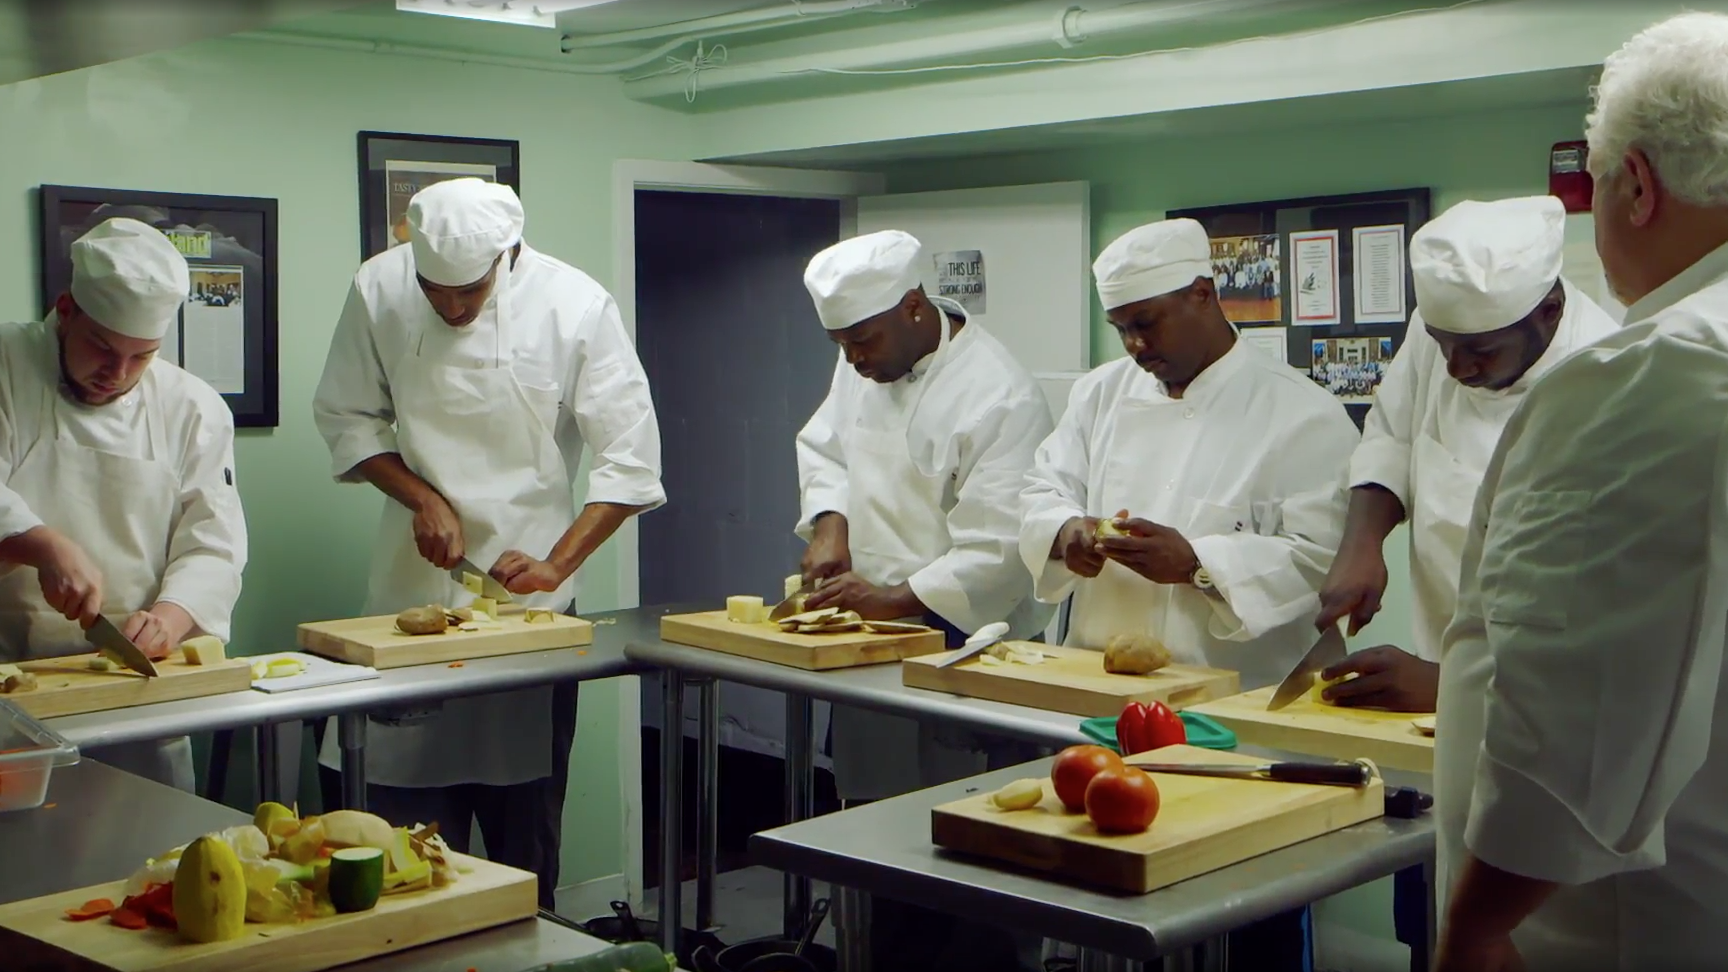 Knife Skills - The inspiring story of a classic French restaurant and the formerly incarcerated people who've made it succeed. Directed by Thomas Lennon.